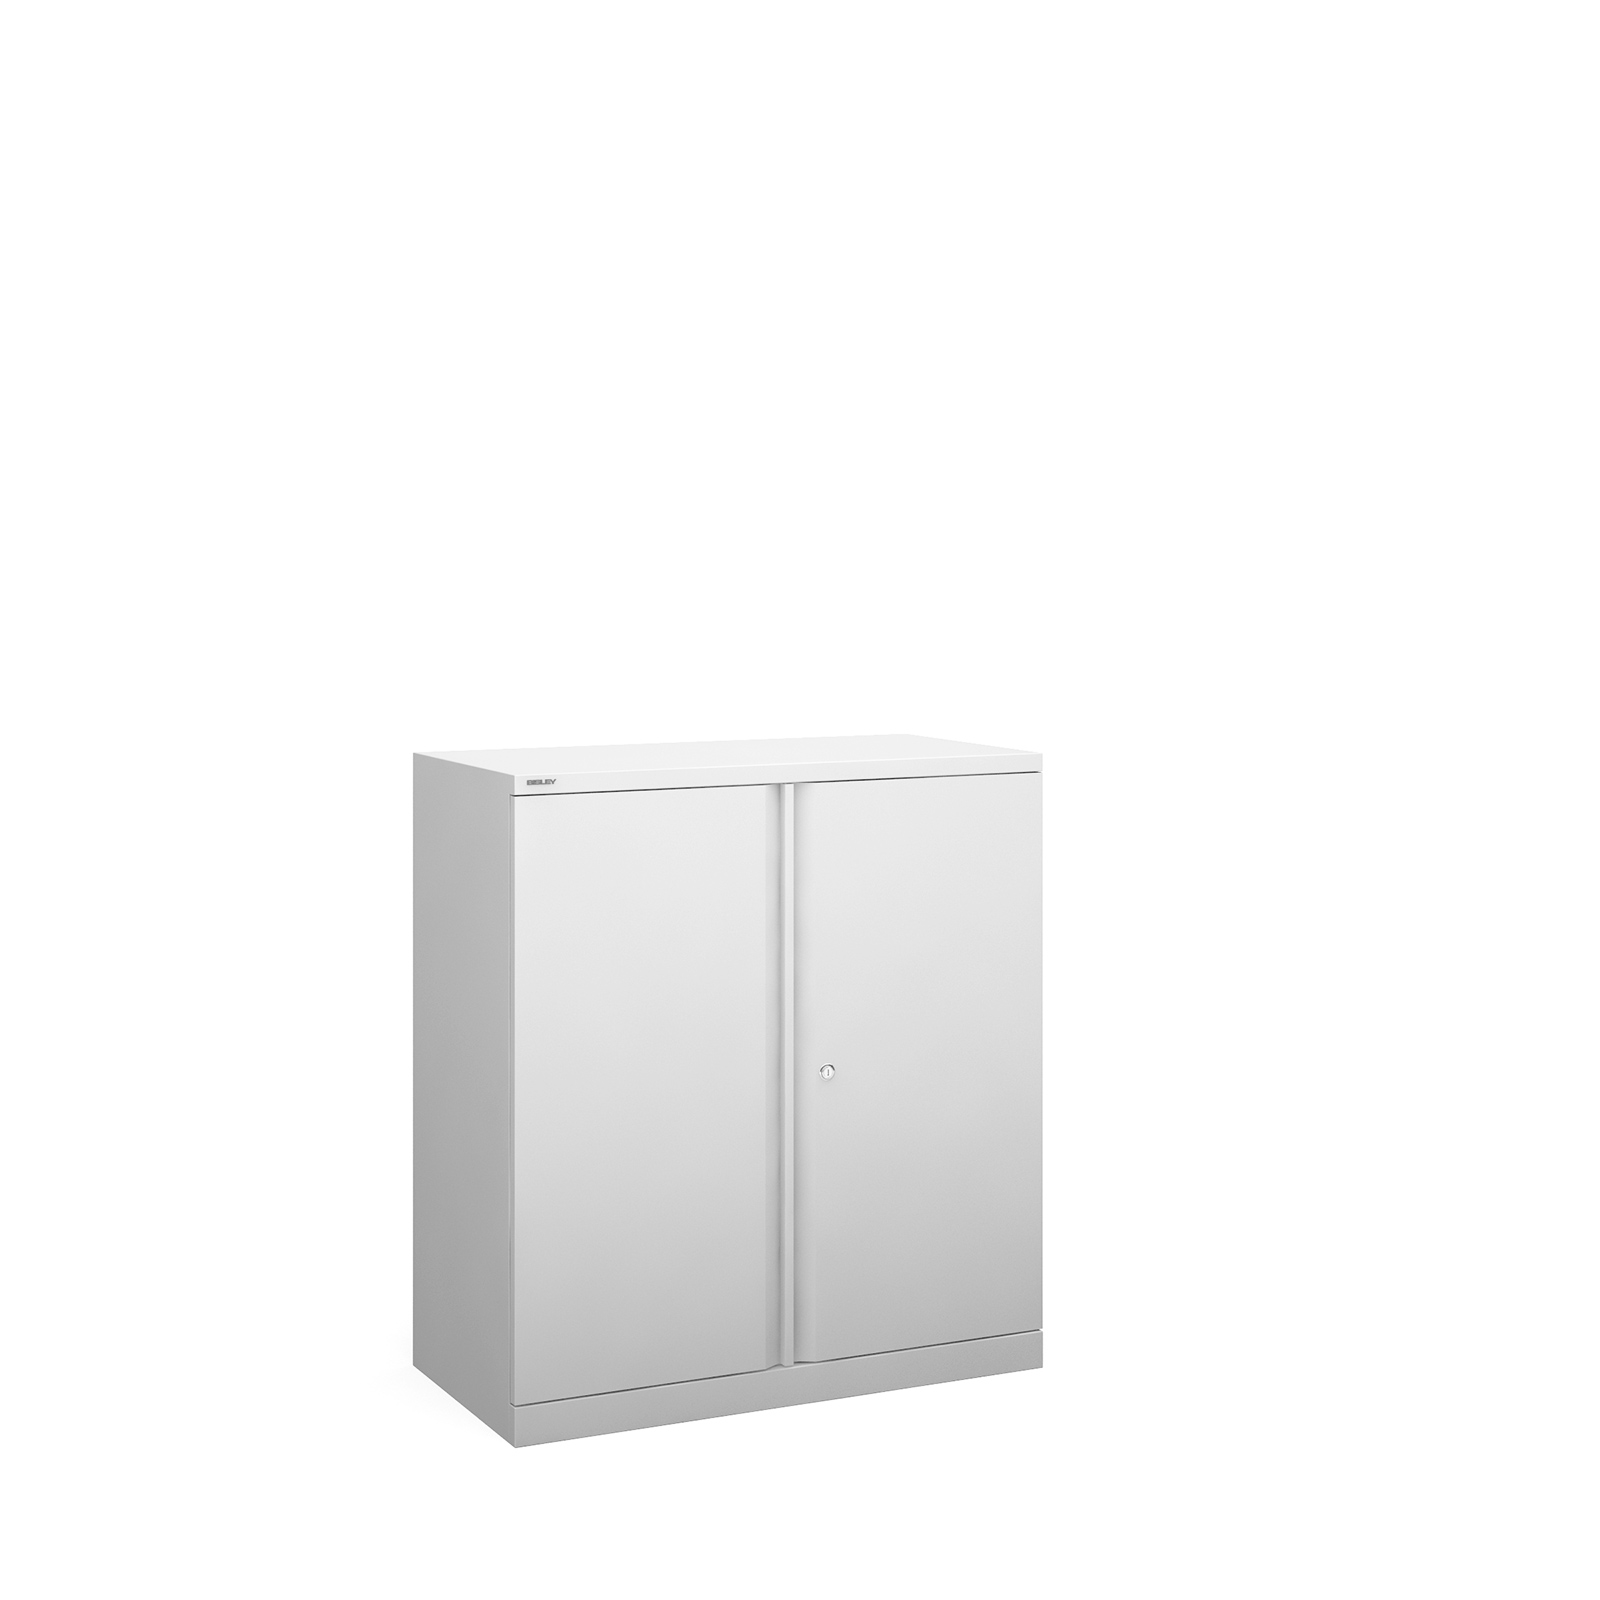 Bisley systems storage low cupboard 1000mm high - white